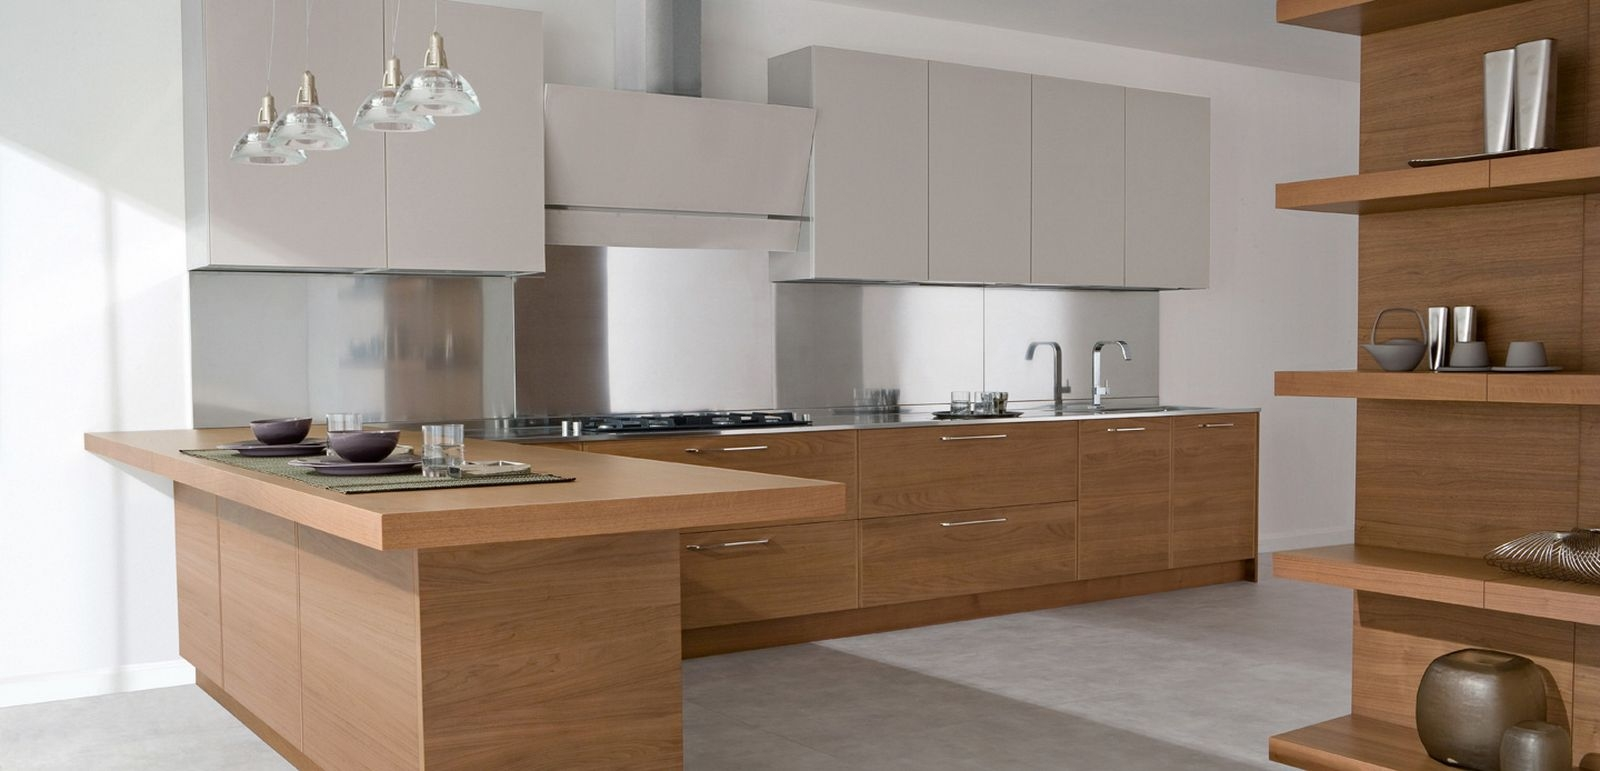 Kitchen Cabinet Basics Part 1